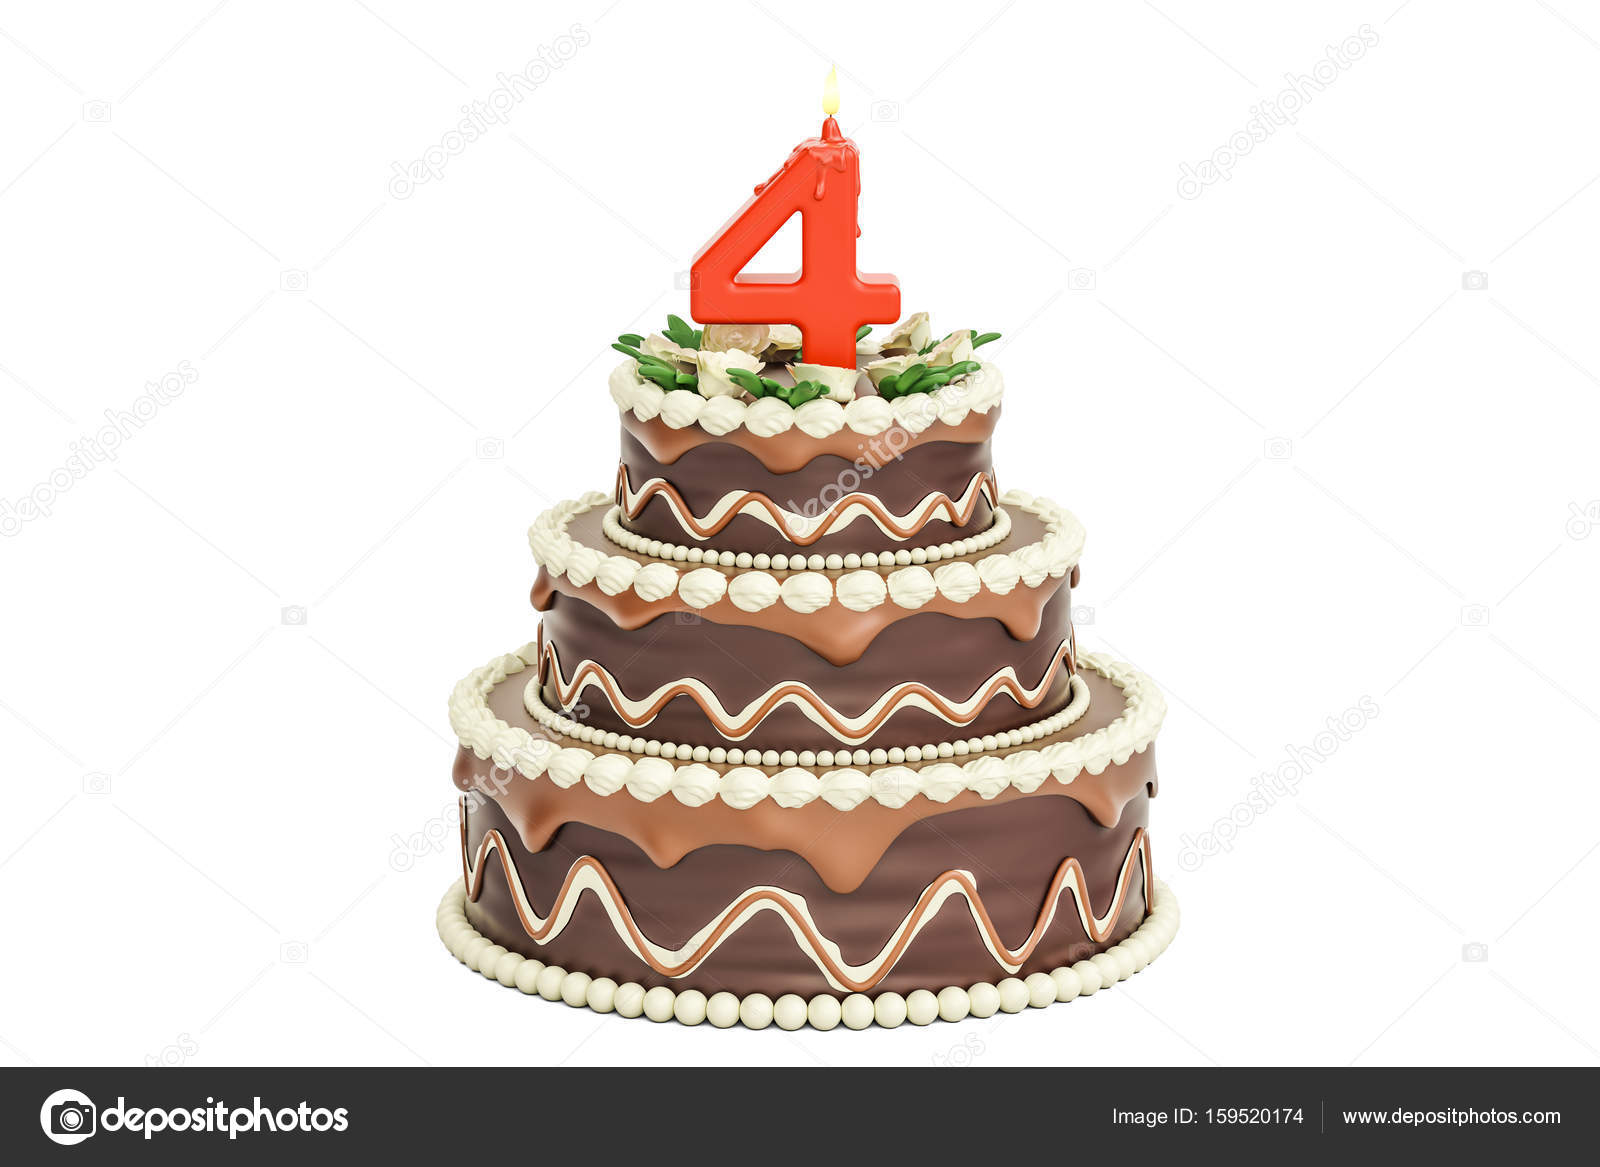 Chocolate Birthday Cake With Candle Number 4 3D Rendering Isolated On White Background Photo By Alexlmx